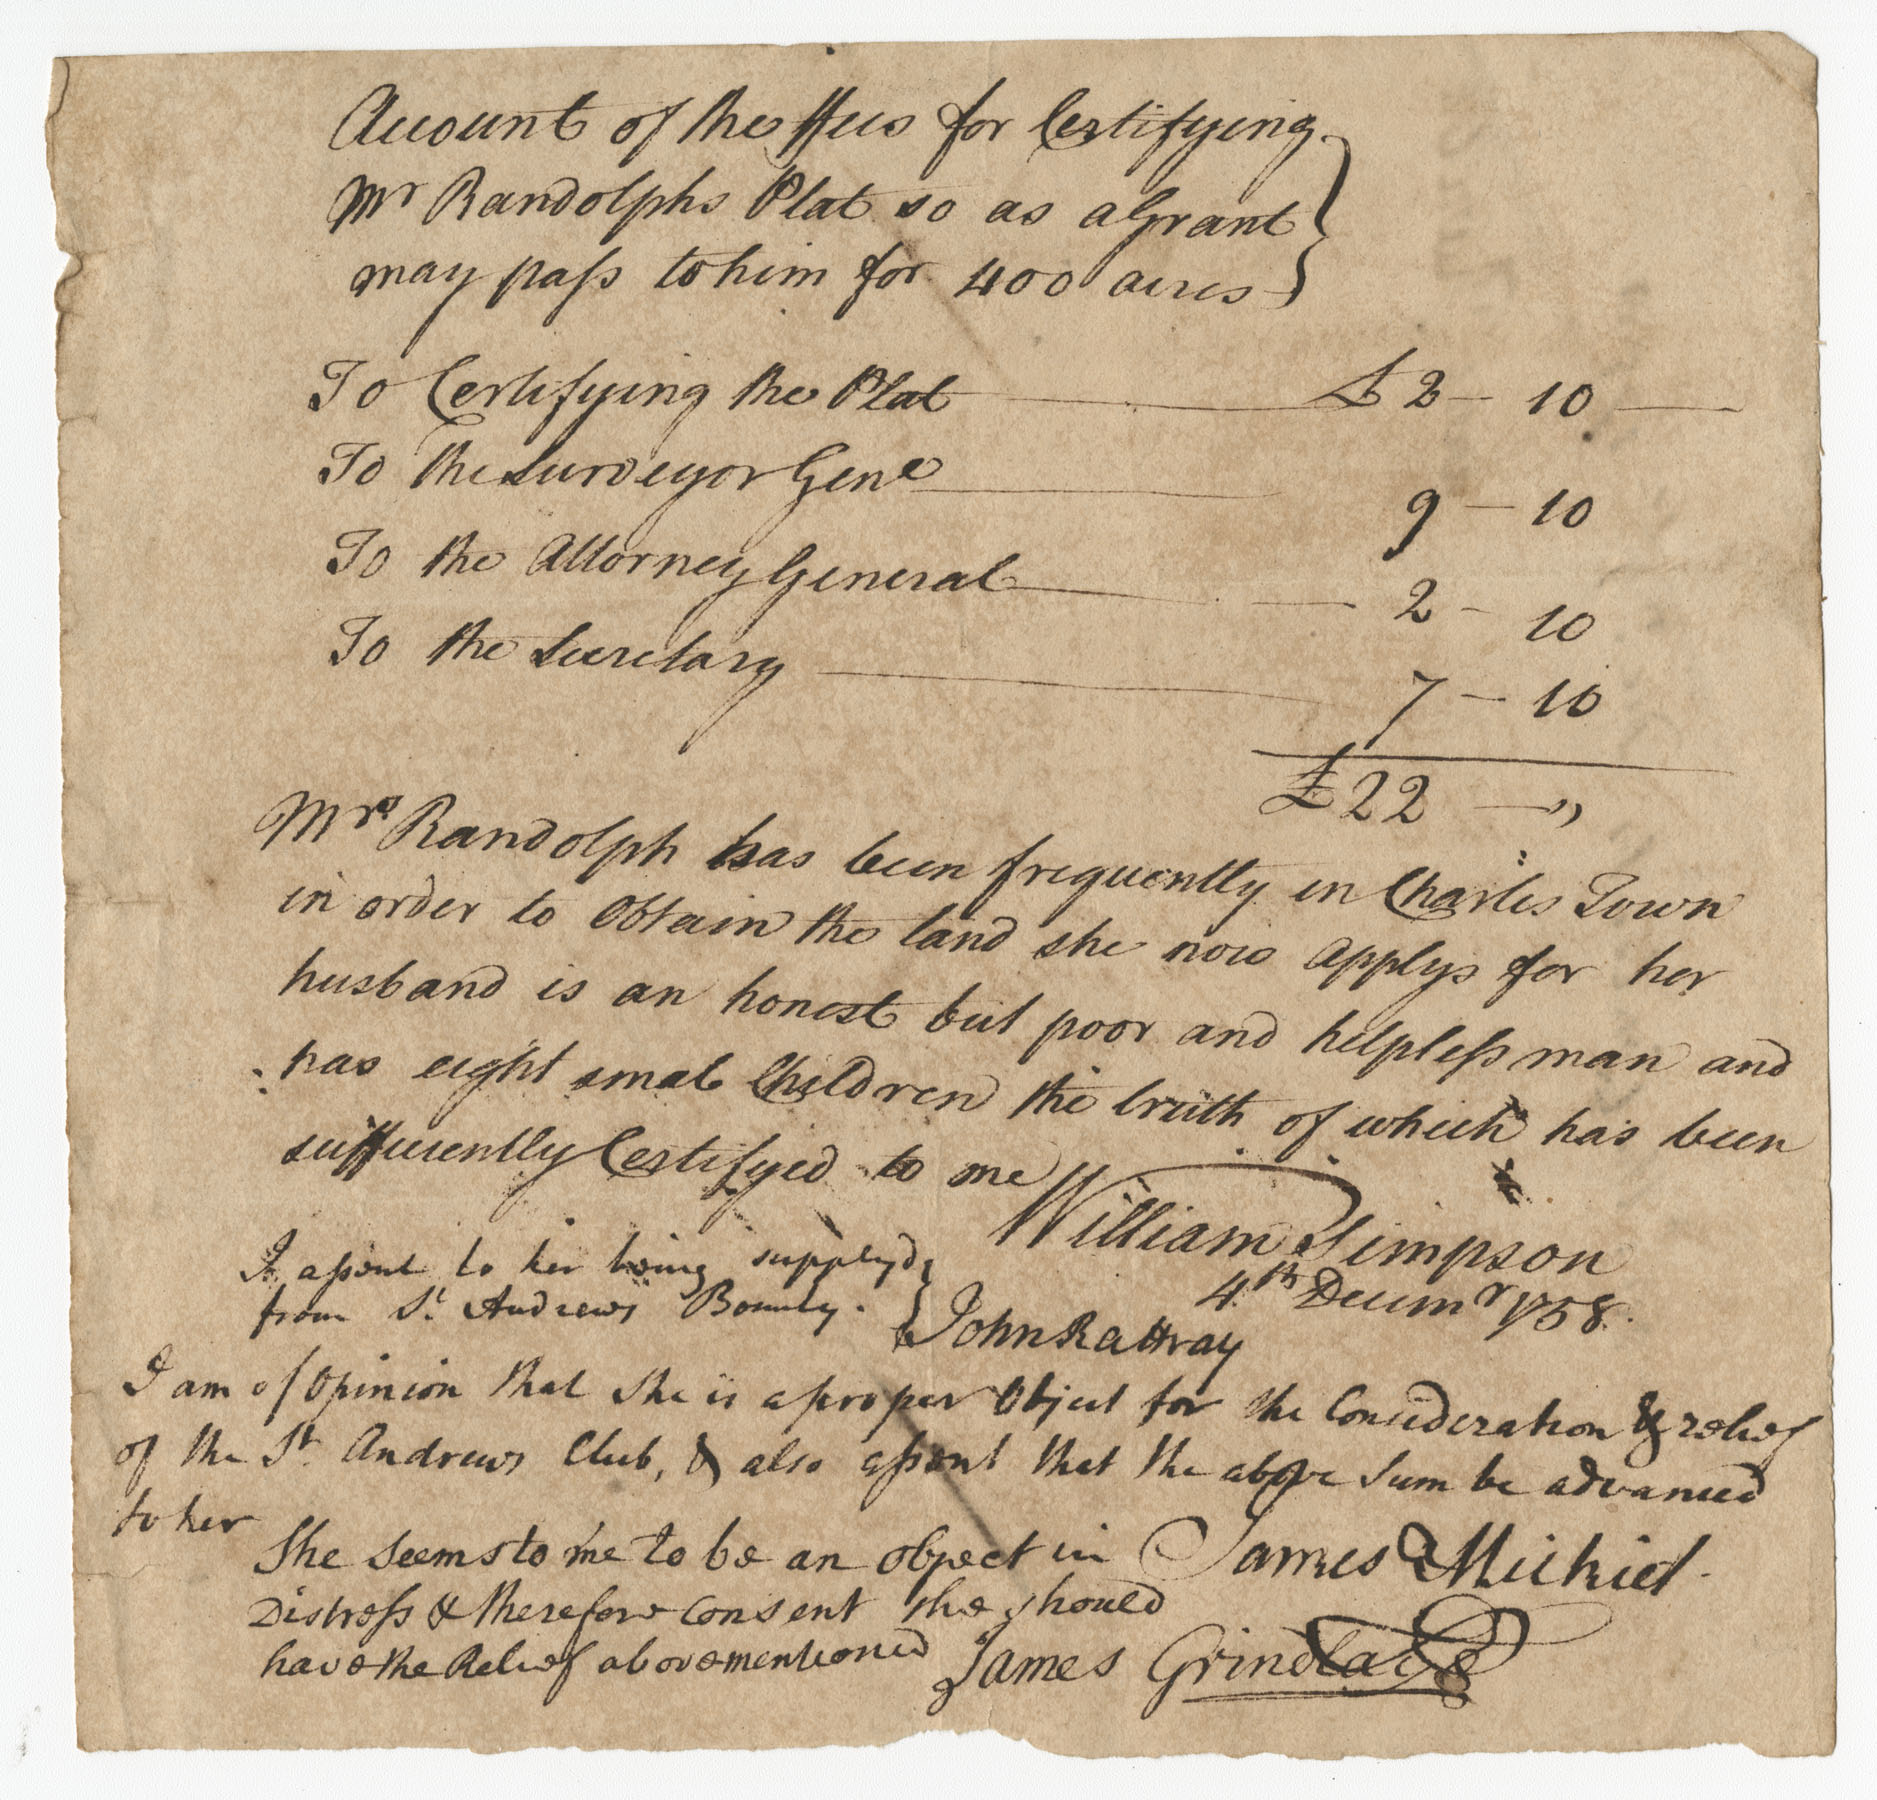 The Randolph's Petition Letter to the St. Andrew's Society